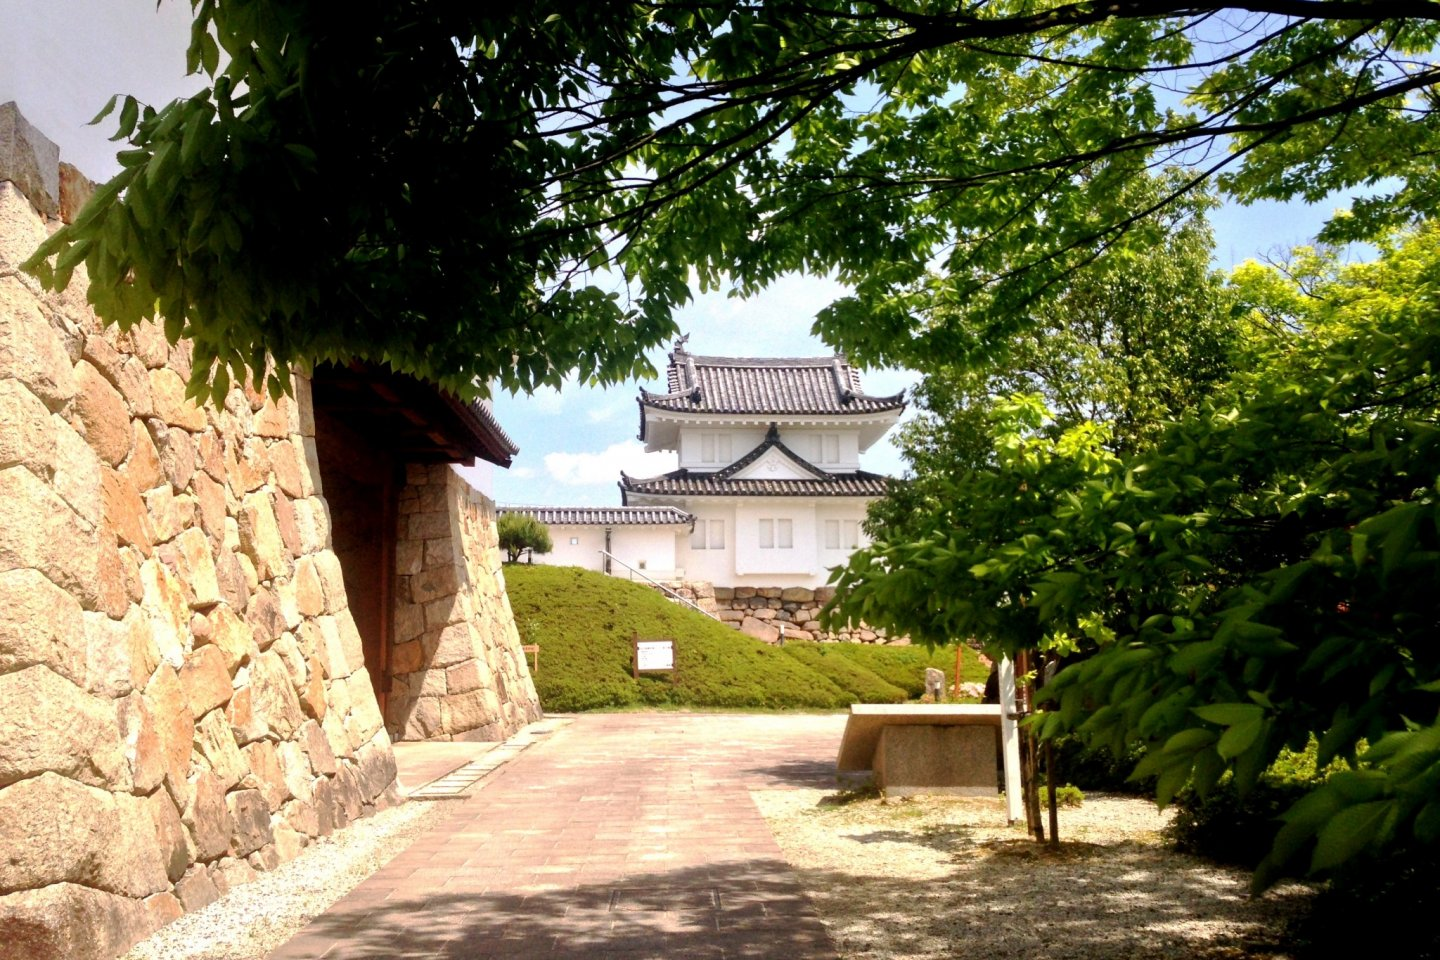 Relive the days of the Samurai in this beautiful garden in the castle town of Maizuru, close to Maizuru Port where cruise liners like Princess and Carnival dock on their trip around the Pacific Ocean.